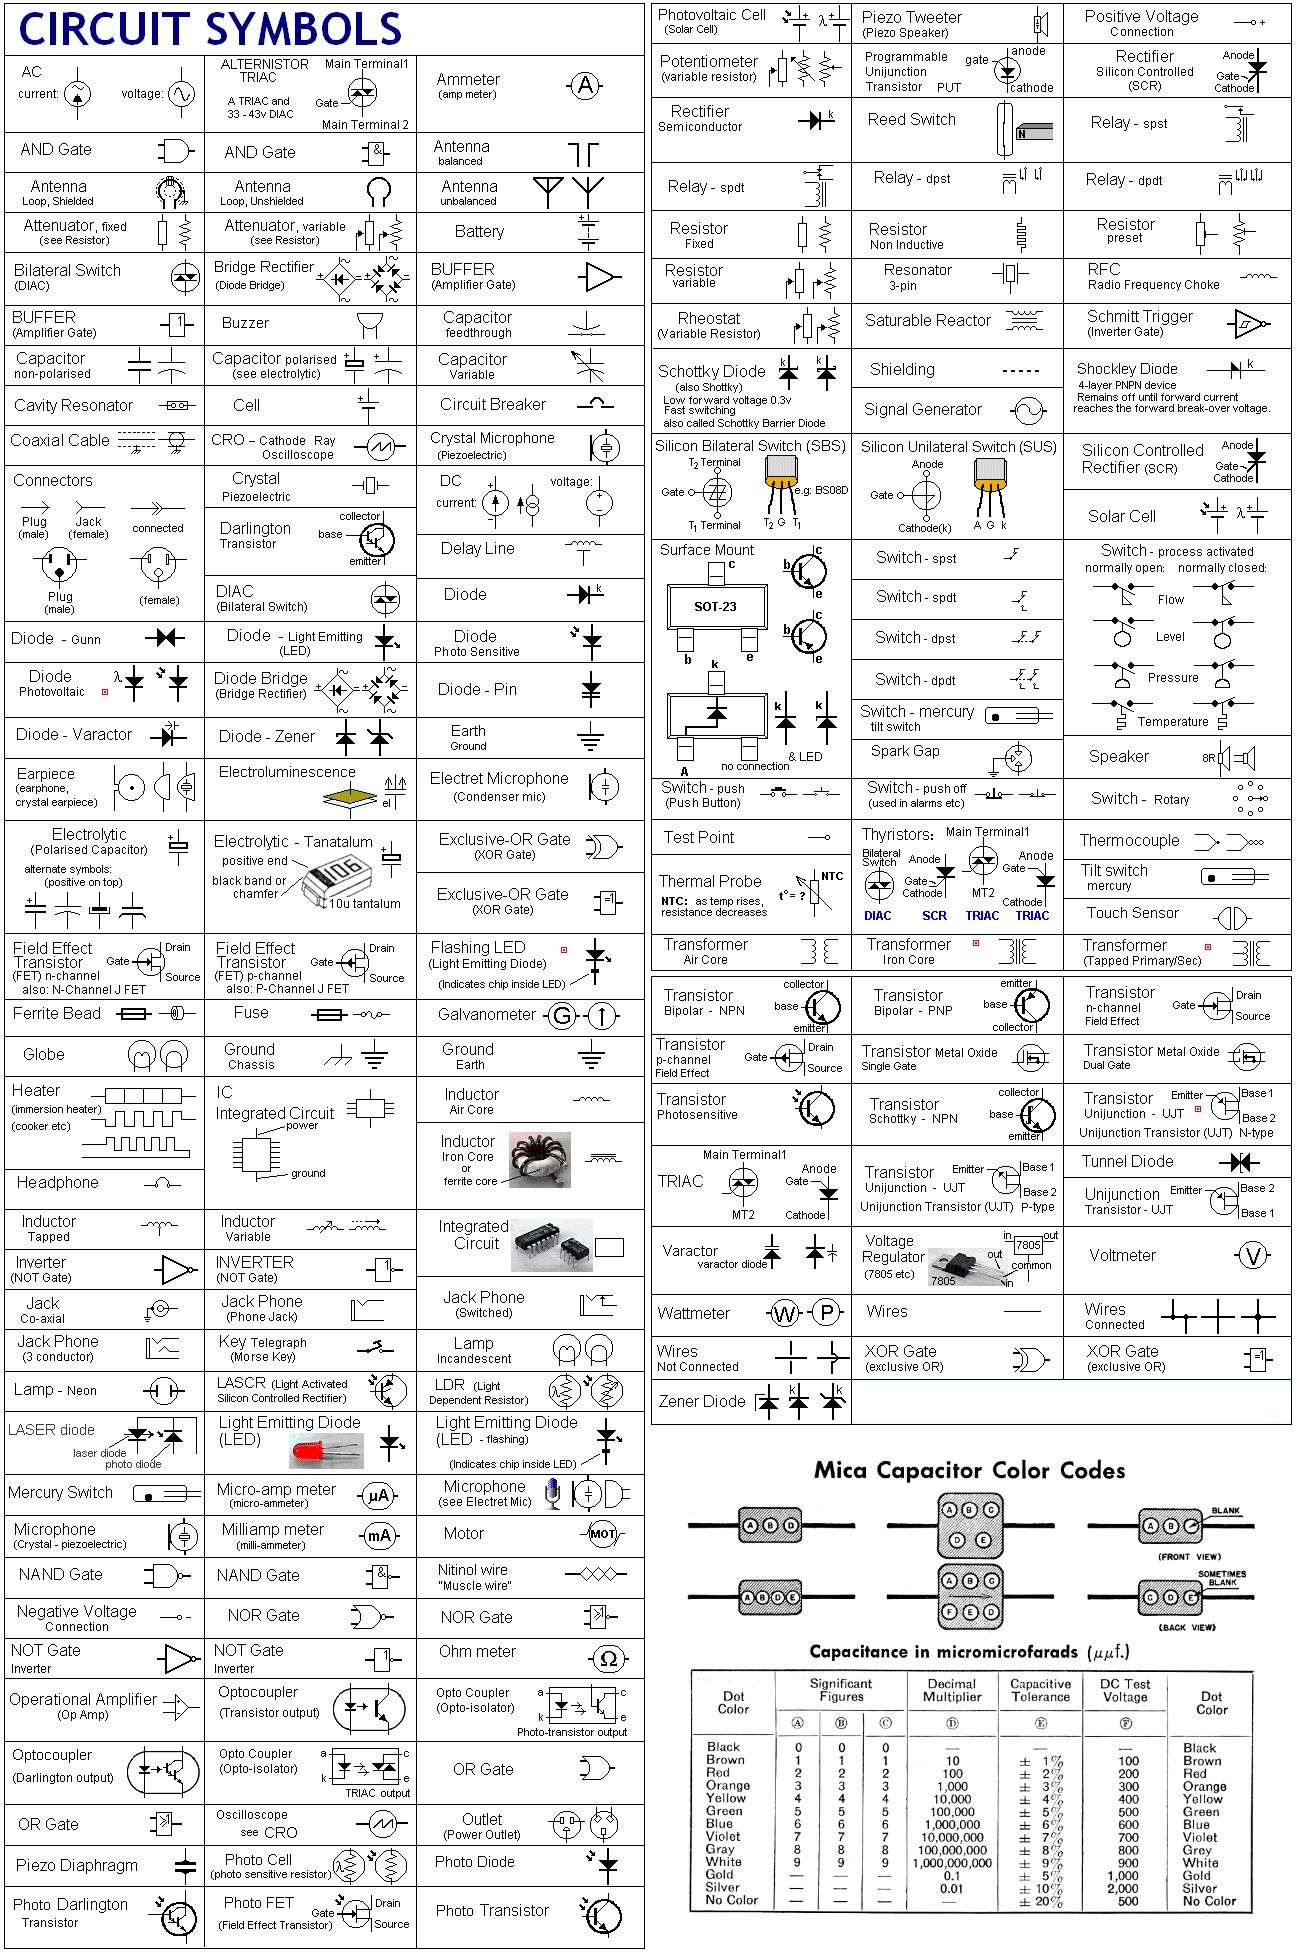 Schematic Symbols Chart | Electric Circuit Symbols: a considerably ...